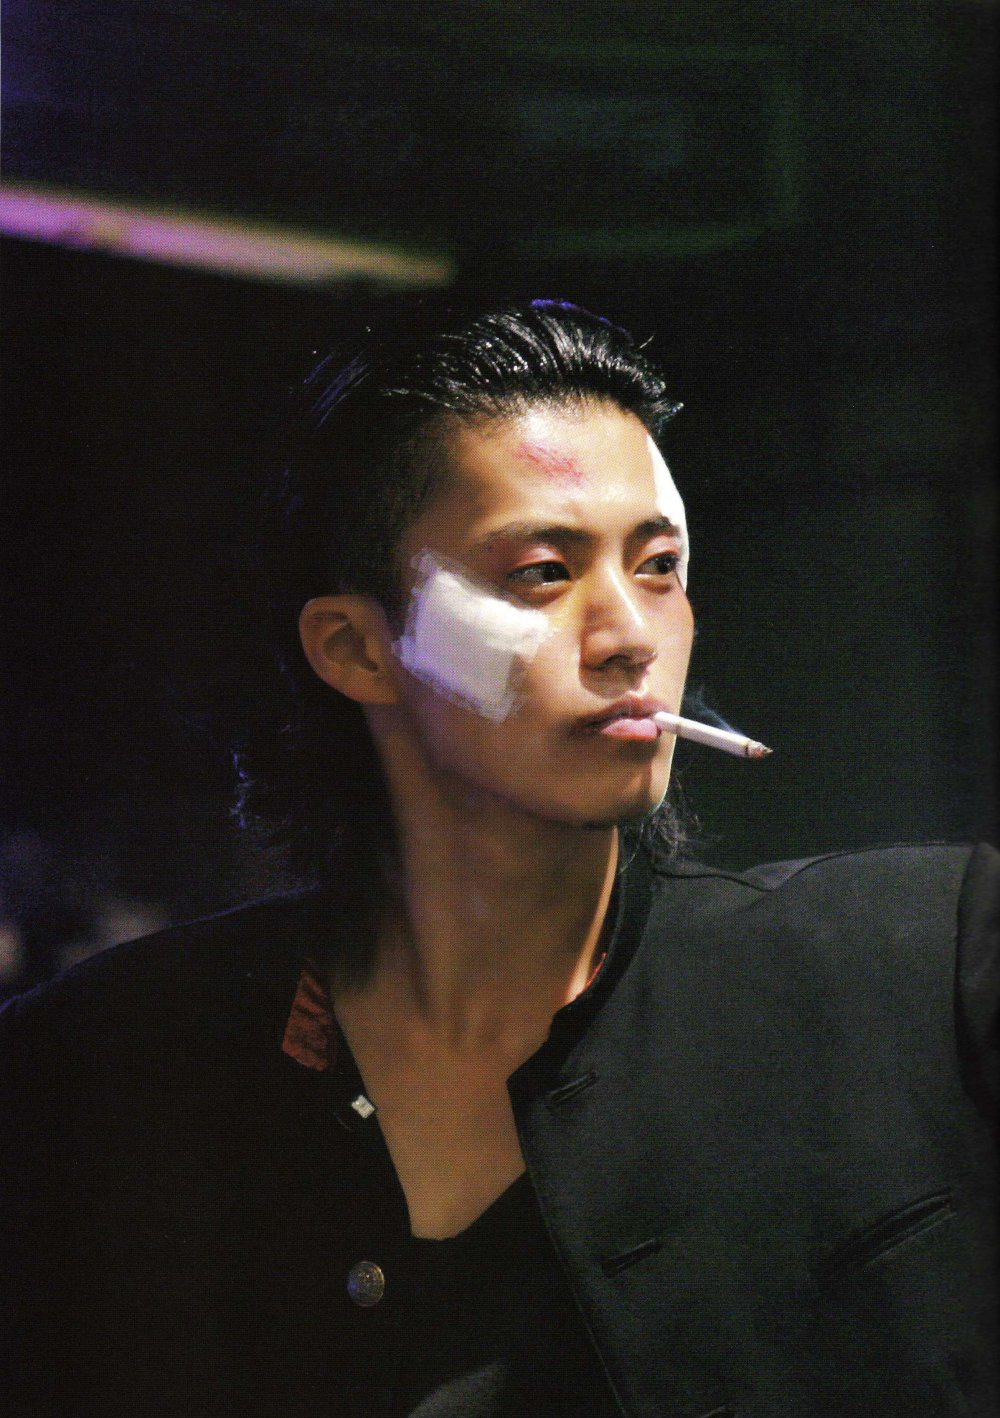 Genji Crows Zero Oguri Shun 3 3 3 3 3 まほろば 小栗旬